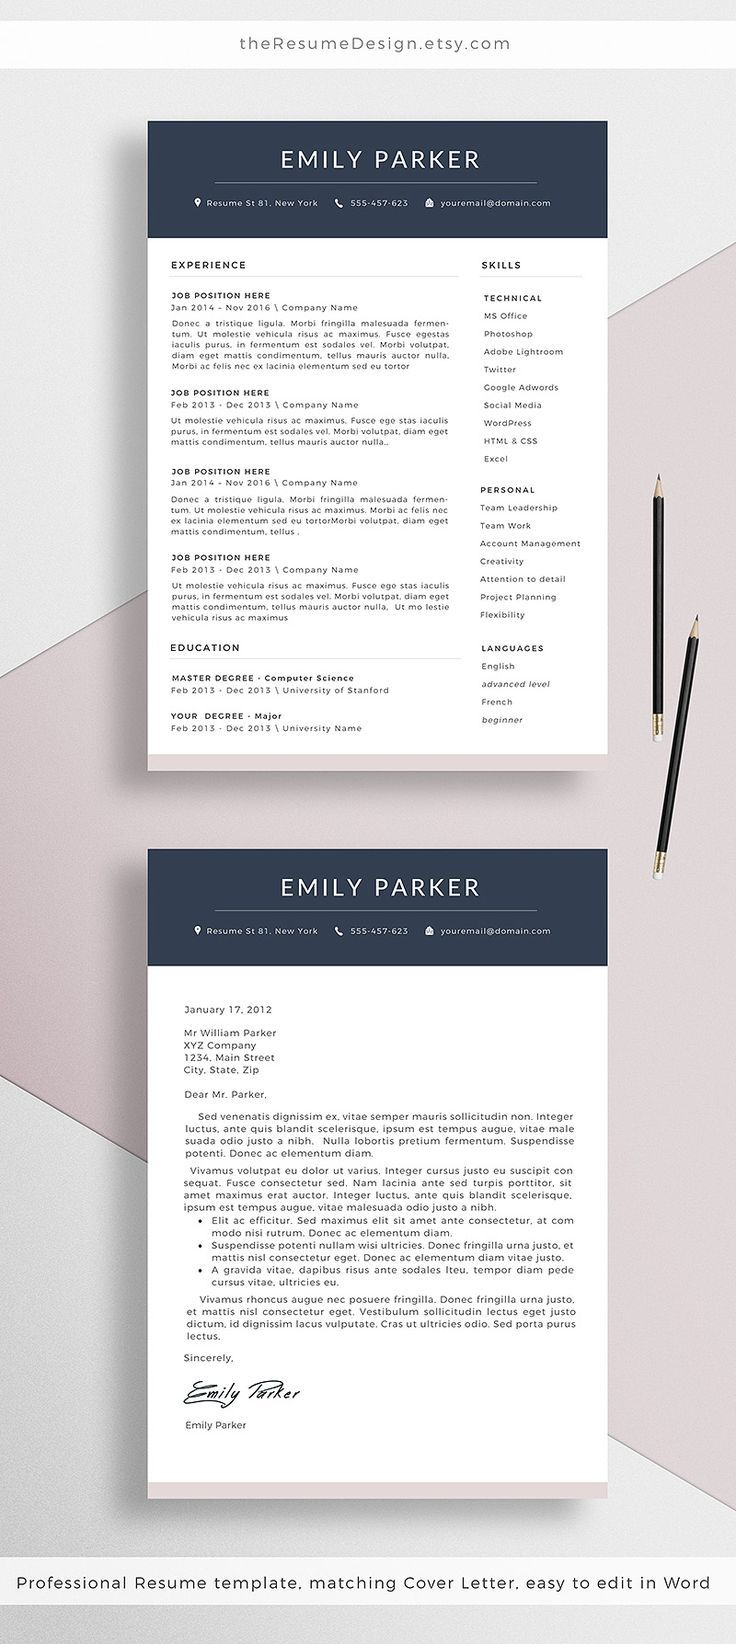 Cv Templates Design%0A Our NEW professional Resume Template Cover Letter for Word  creative CV  design